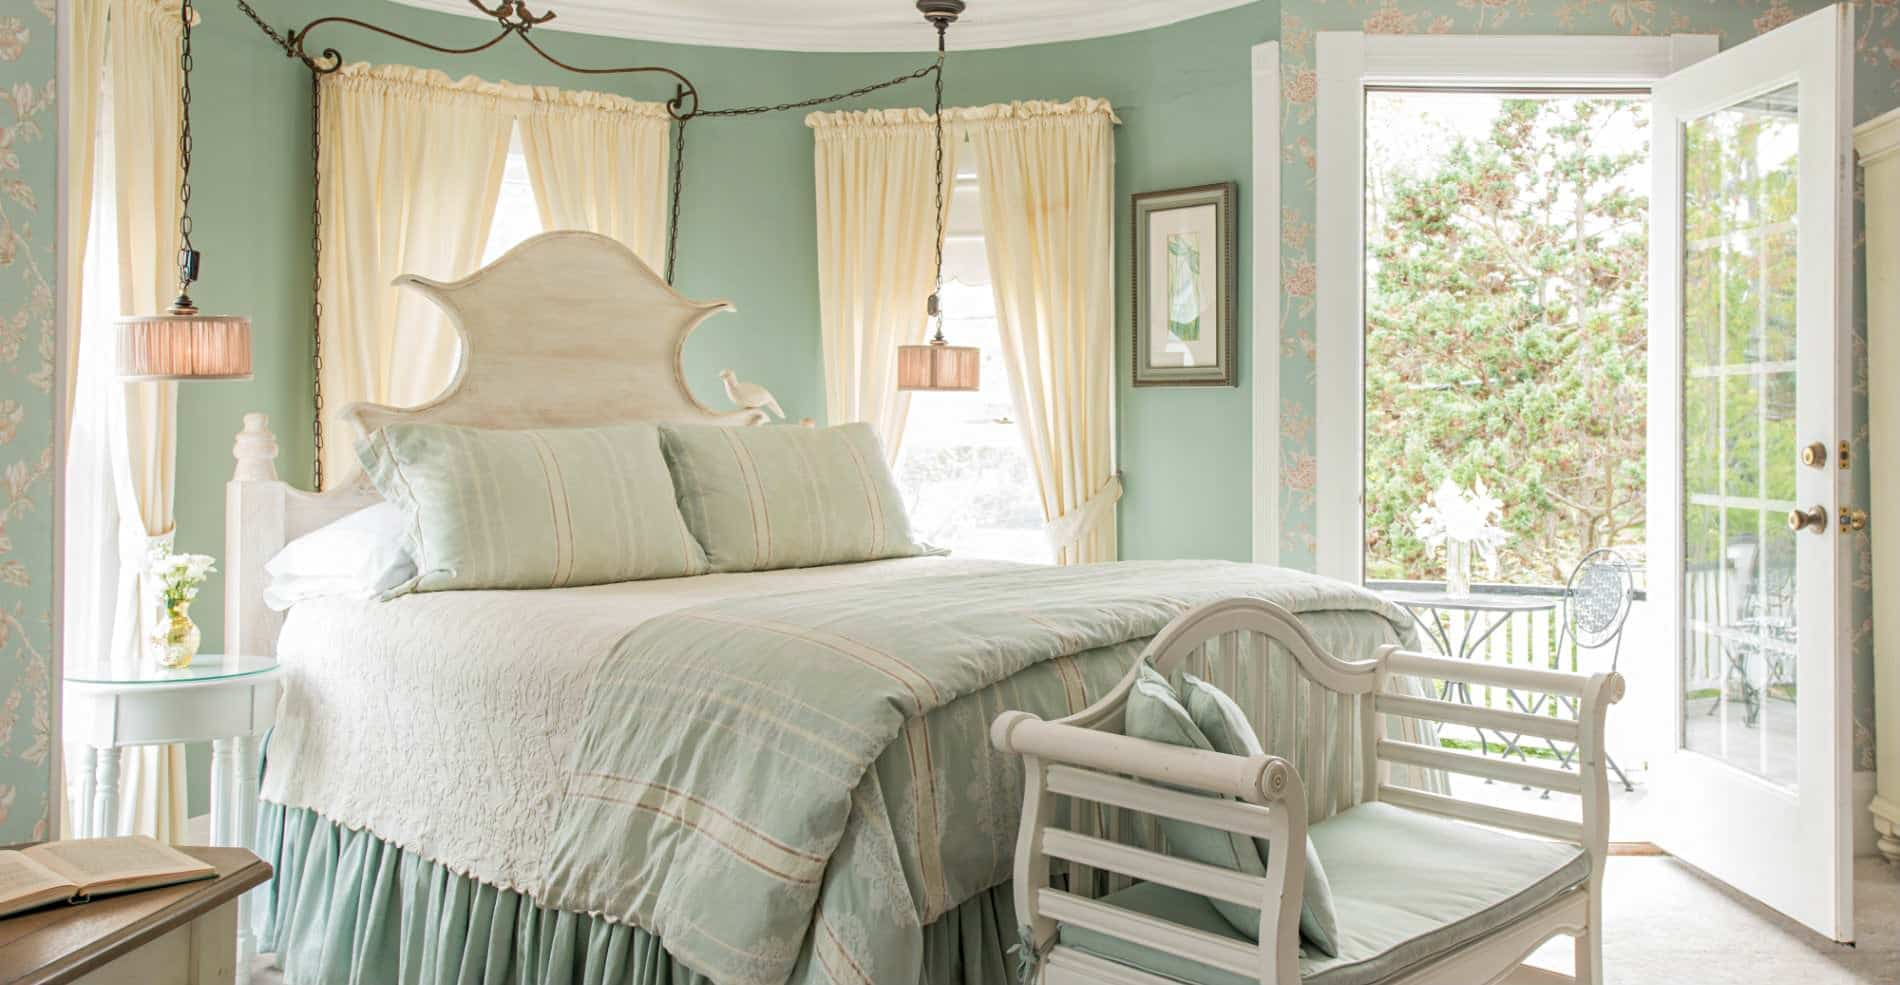 In a teal and white colored room is a well made bed, with an open door leading to the patio